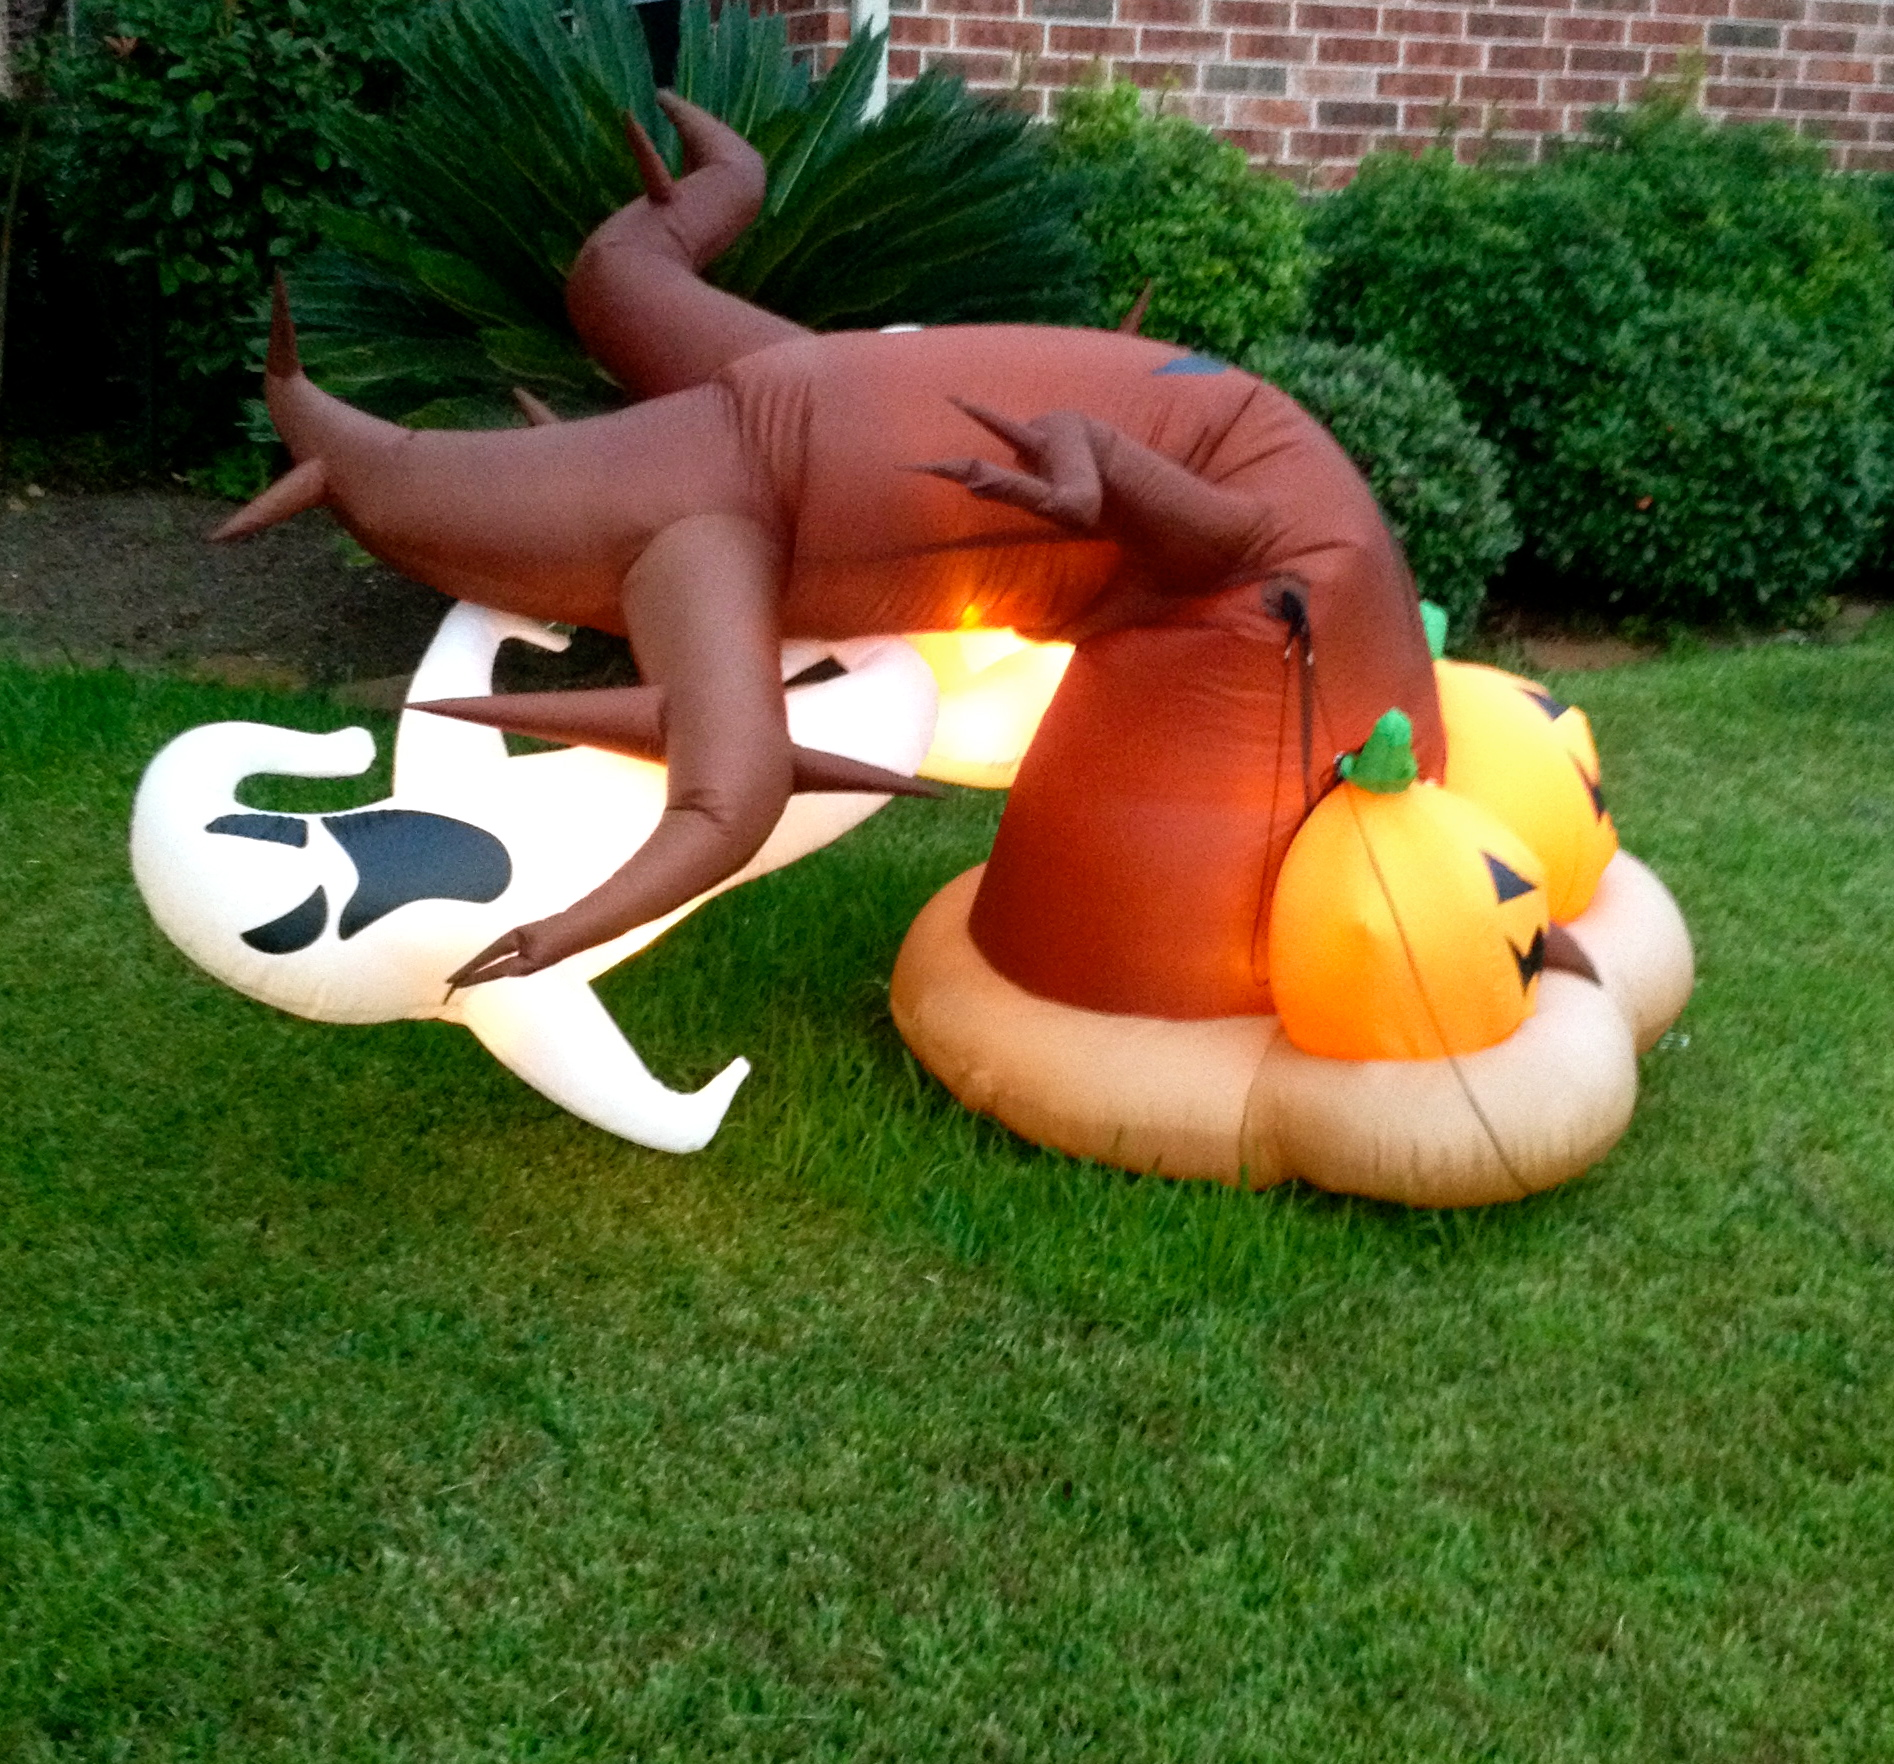 Outdoor inflatable halloween decorations - Inflatable Halloween Yard Decoration With Ghost And Pumkins